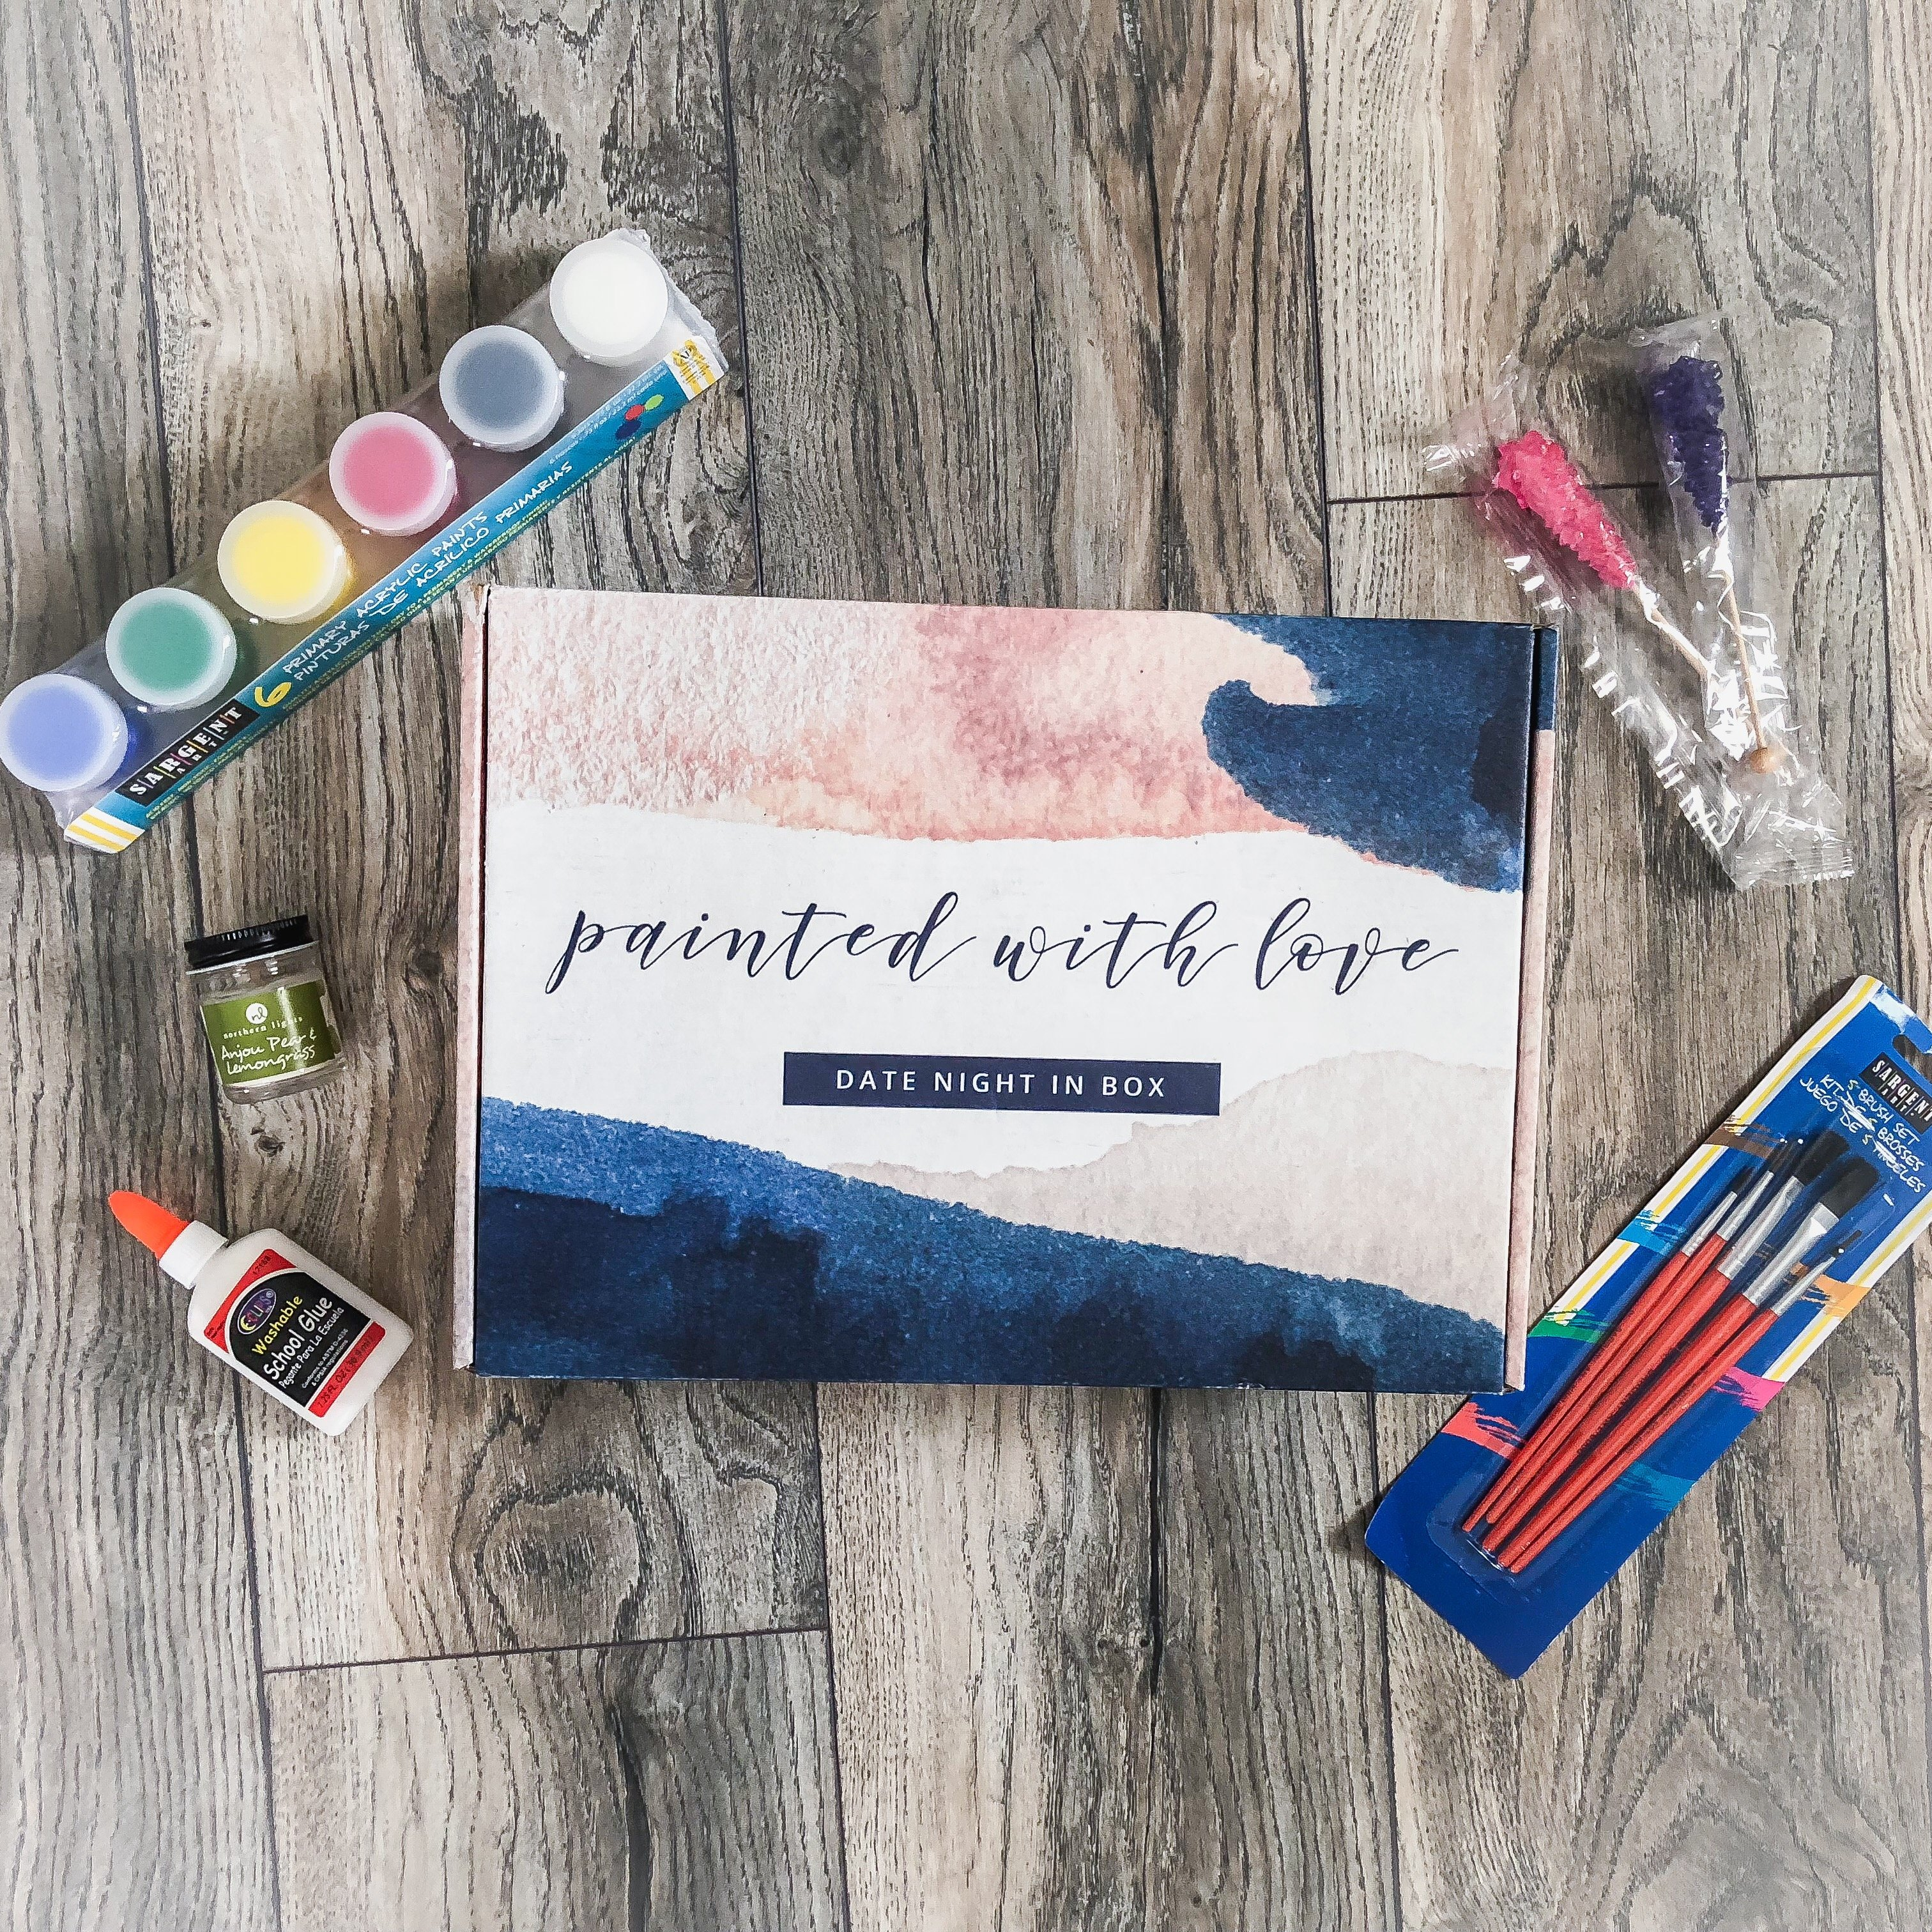 Getting creative with this month's Date Night In Box